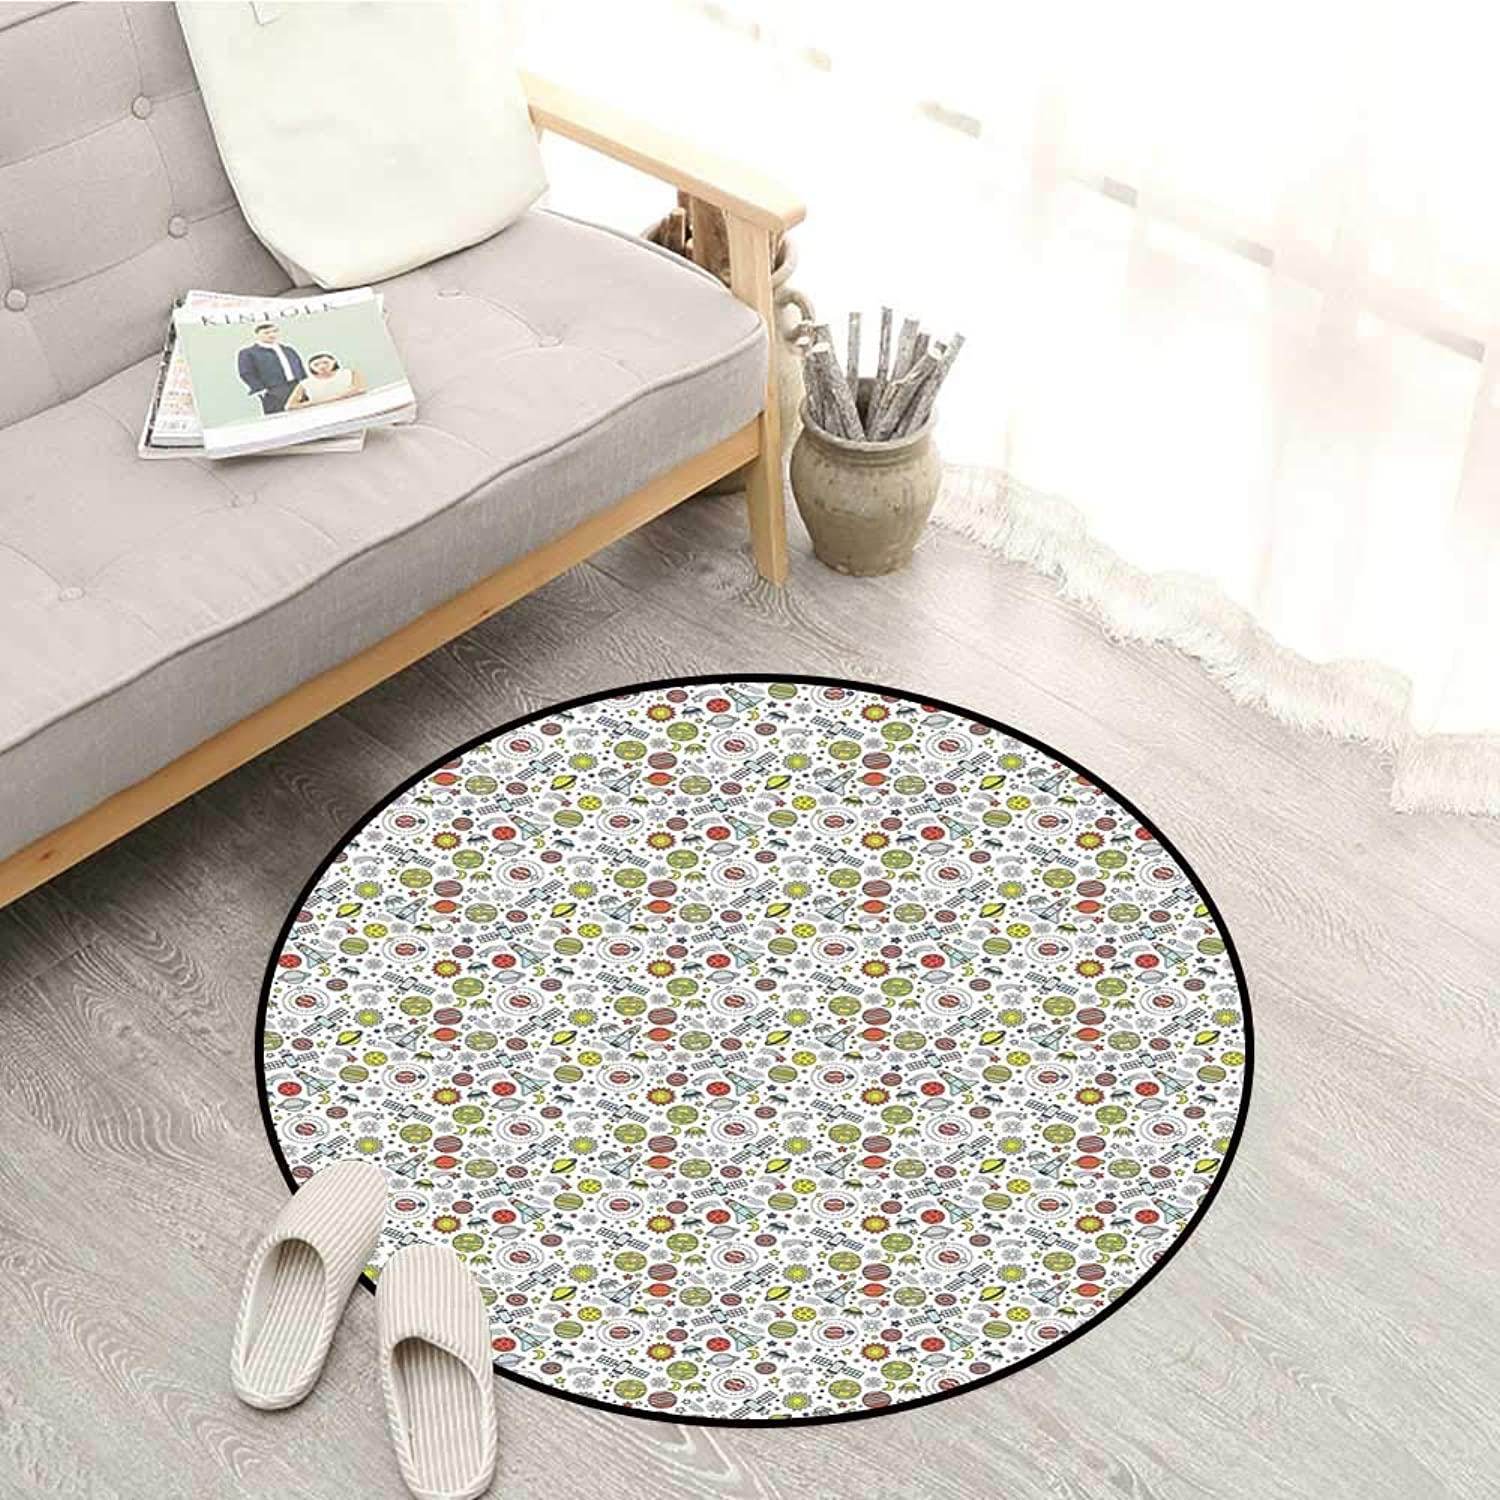 Spaceship Skid-Resistant Rugs colorful Design of Cosmos with Orbiting Moons Doodle Style Rockets and Satellites Sofa Coffee Table Mat 4'7  Multicolor